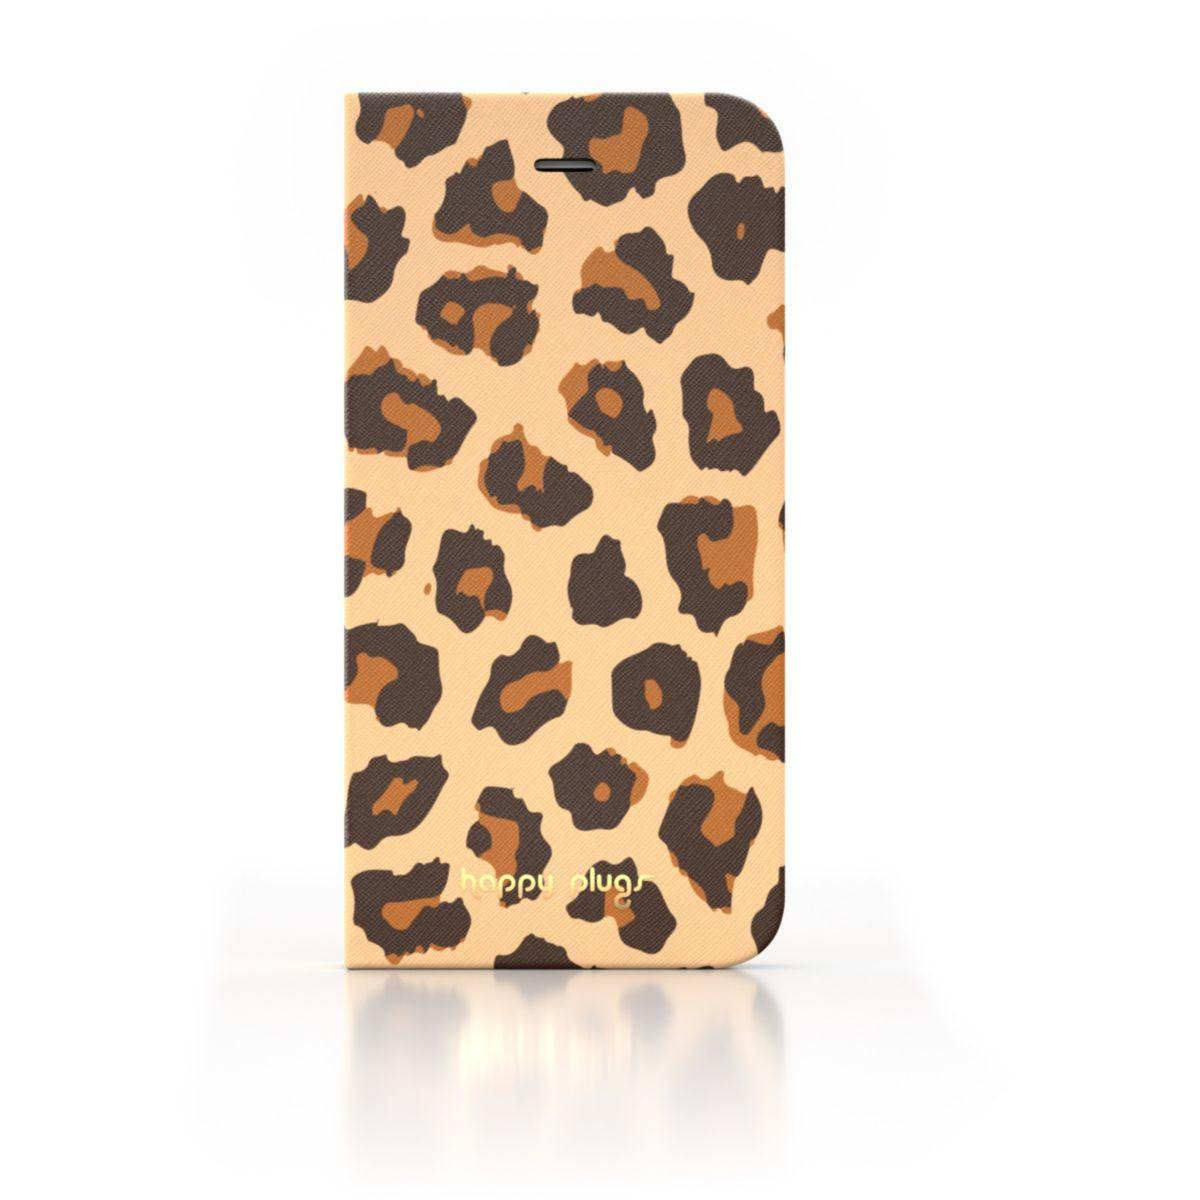 Etui happy plugs iphone 6 leopard - livraison offerte : code relay